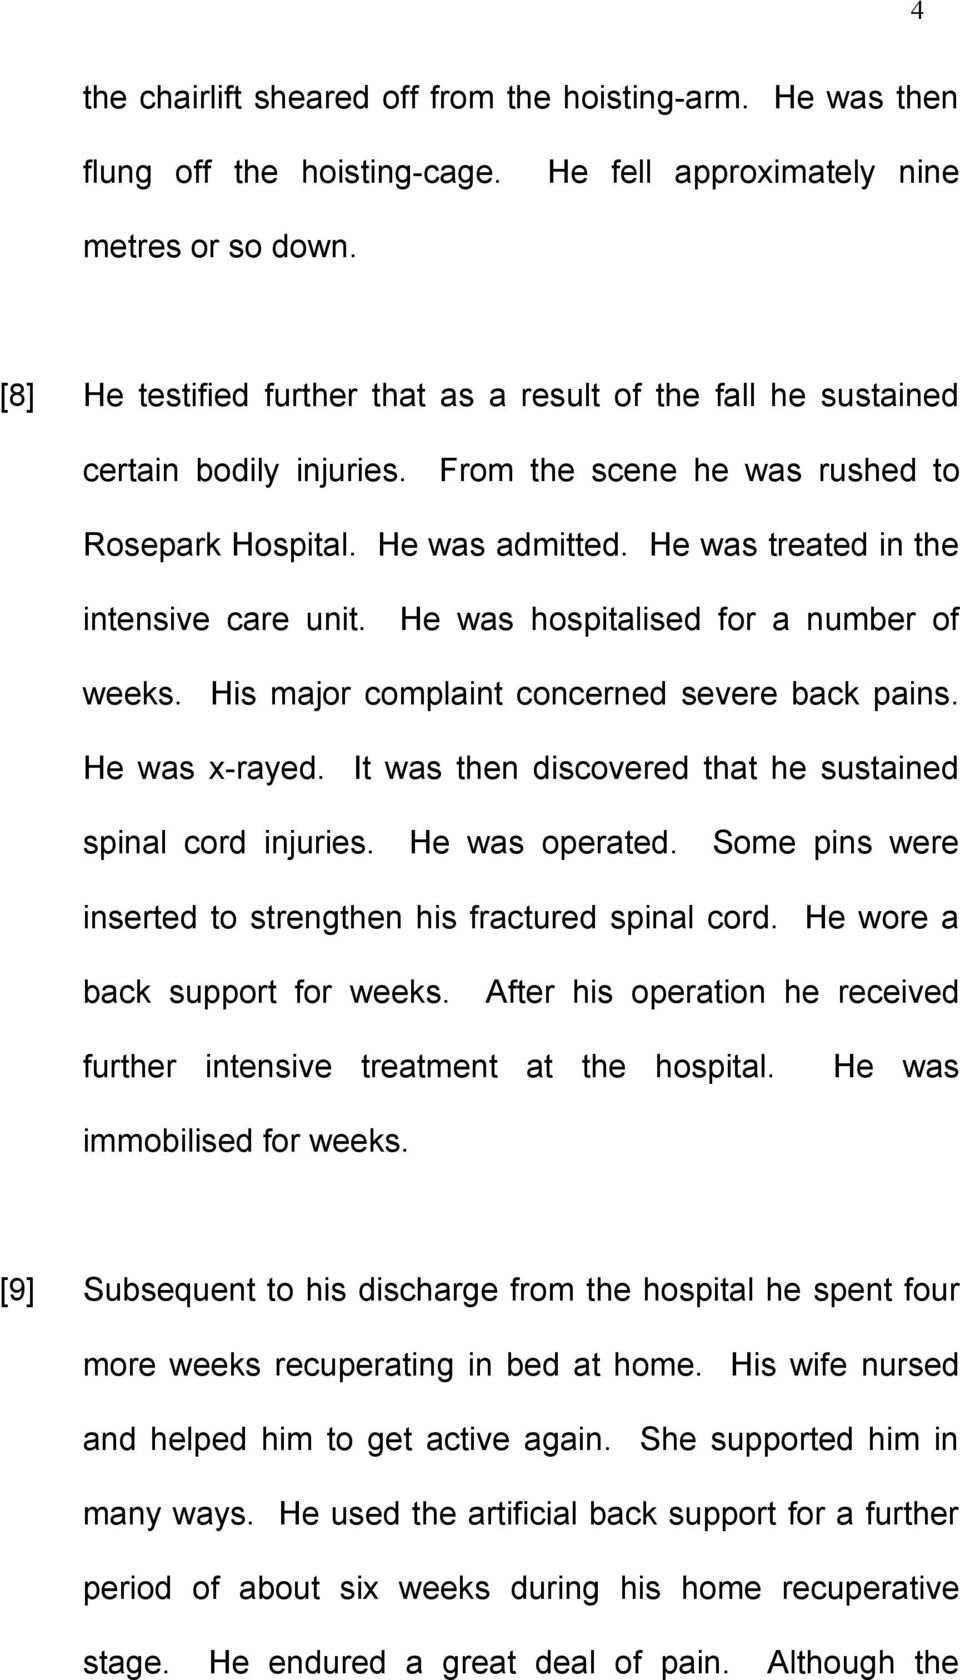 He was treated in the intensive care unit. He was hospitalised for a number of weeks. His major complaint concerned severe back pains. He was x-rayed.